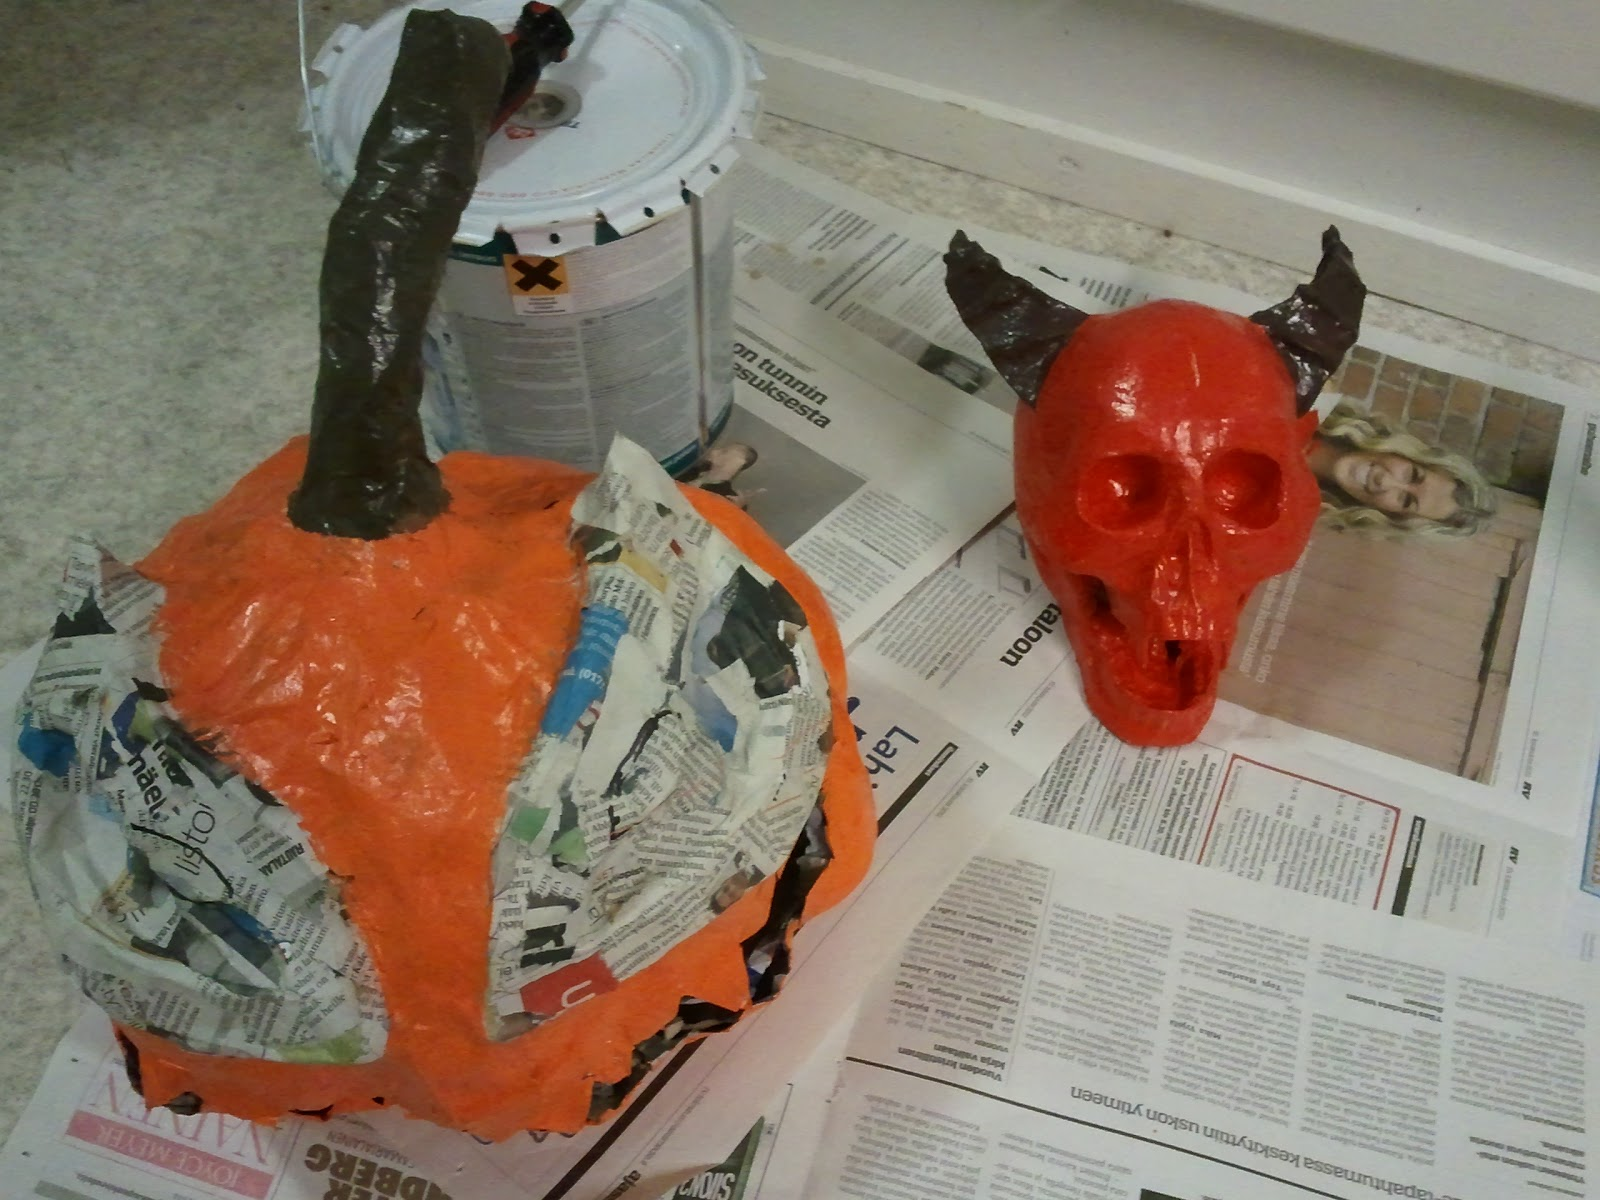 Riittalicious halloween paper mache bones 2012 for Finishing paper mache